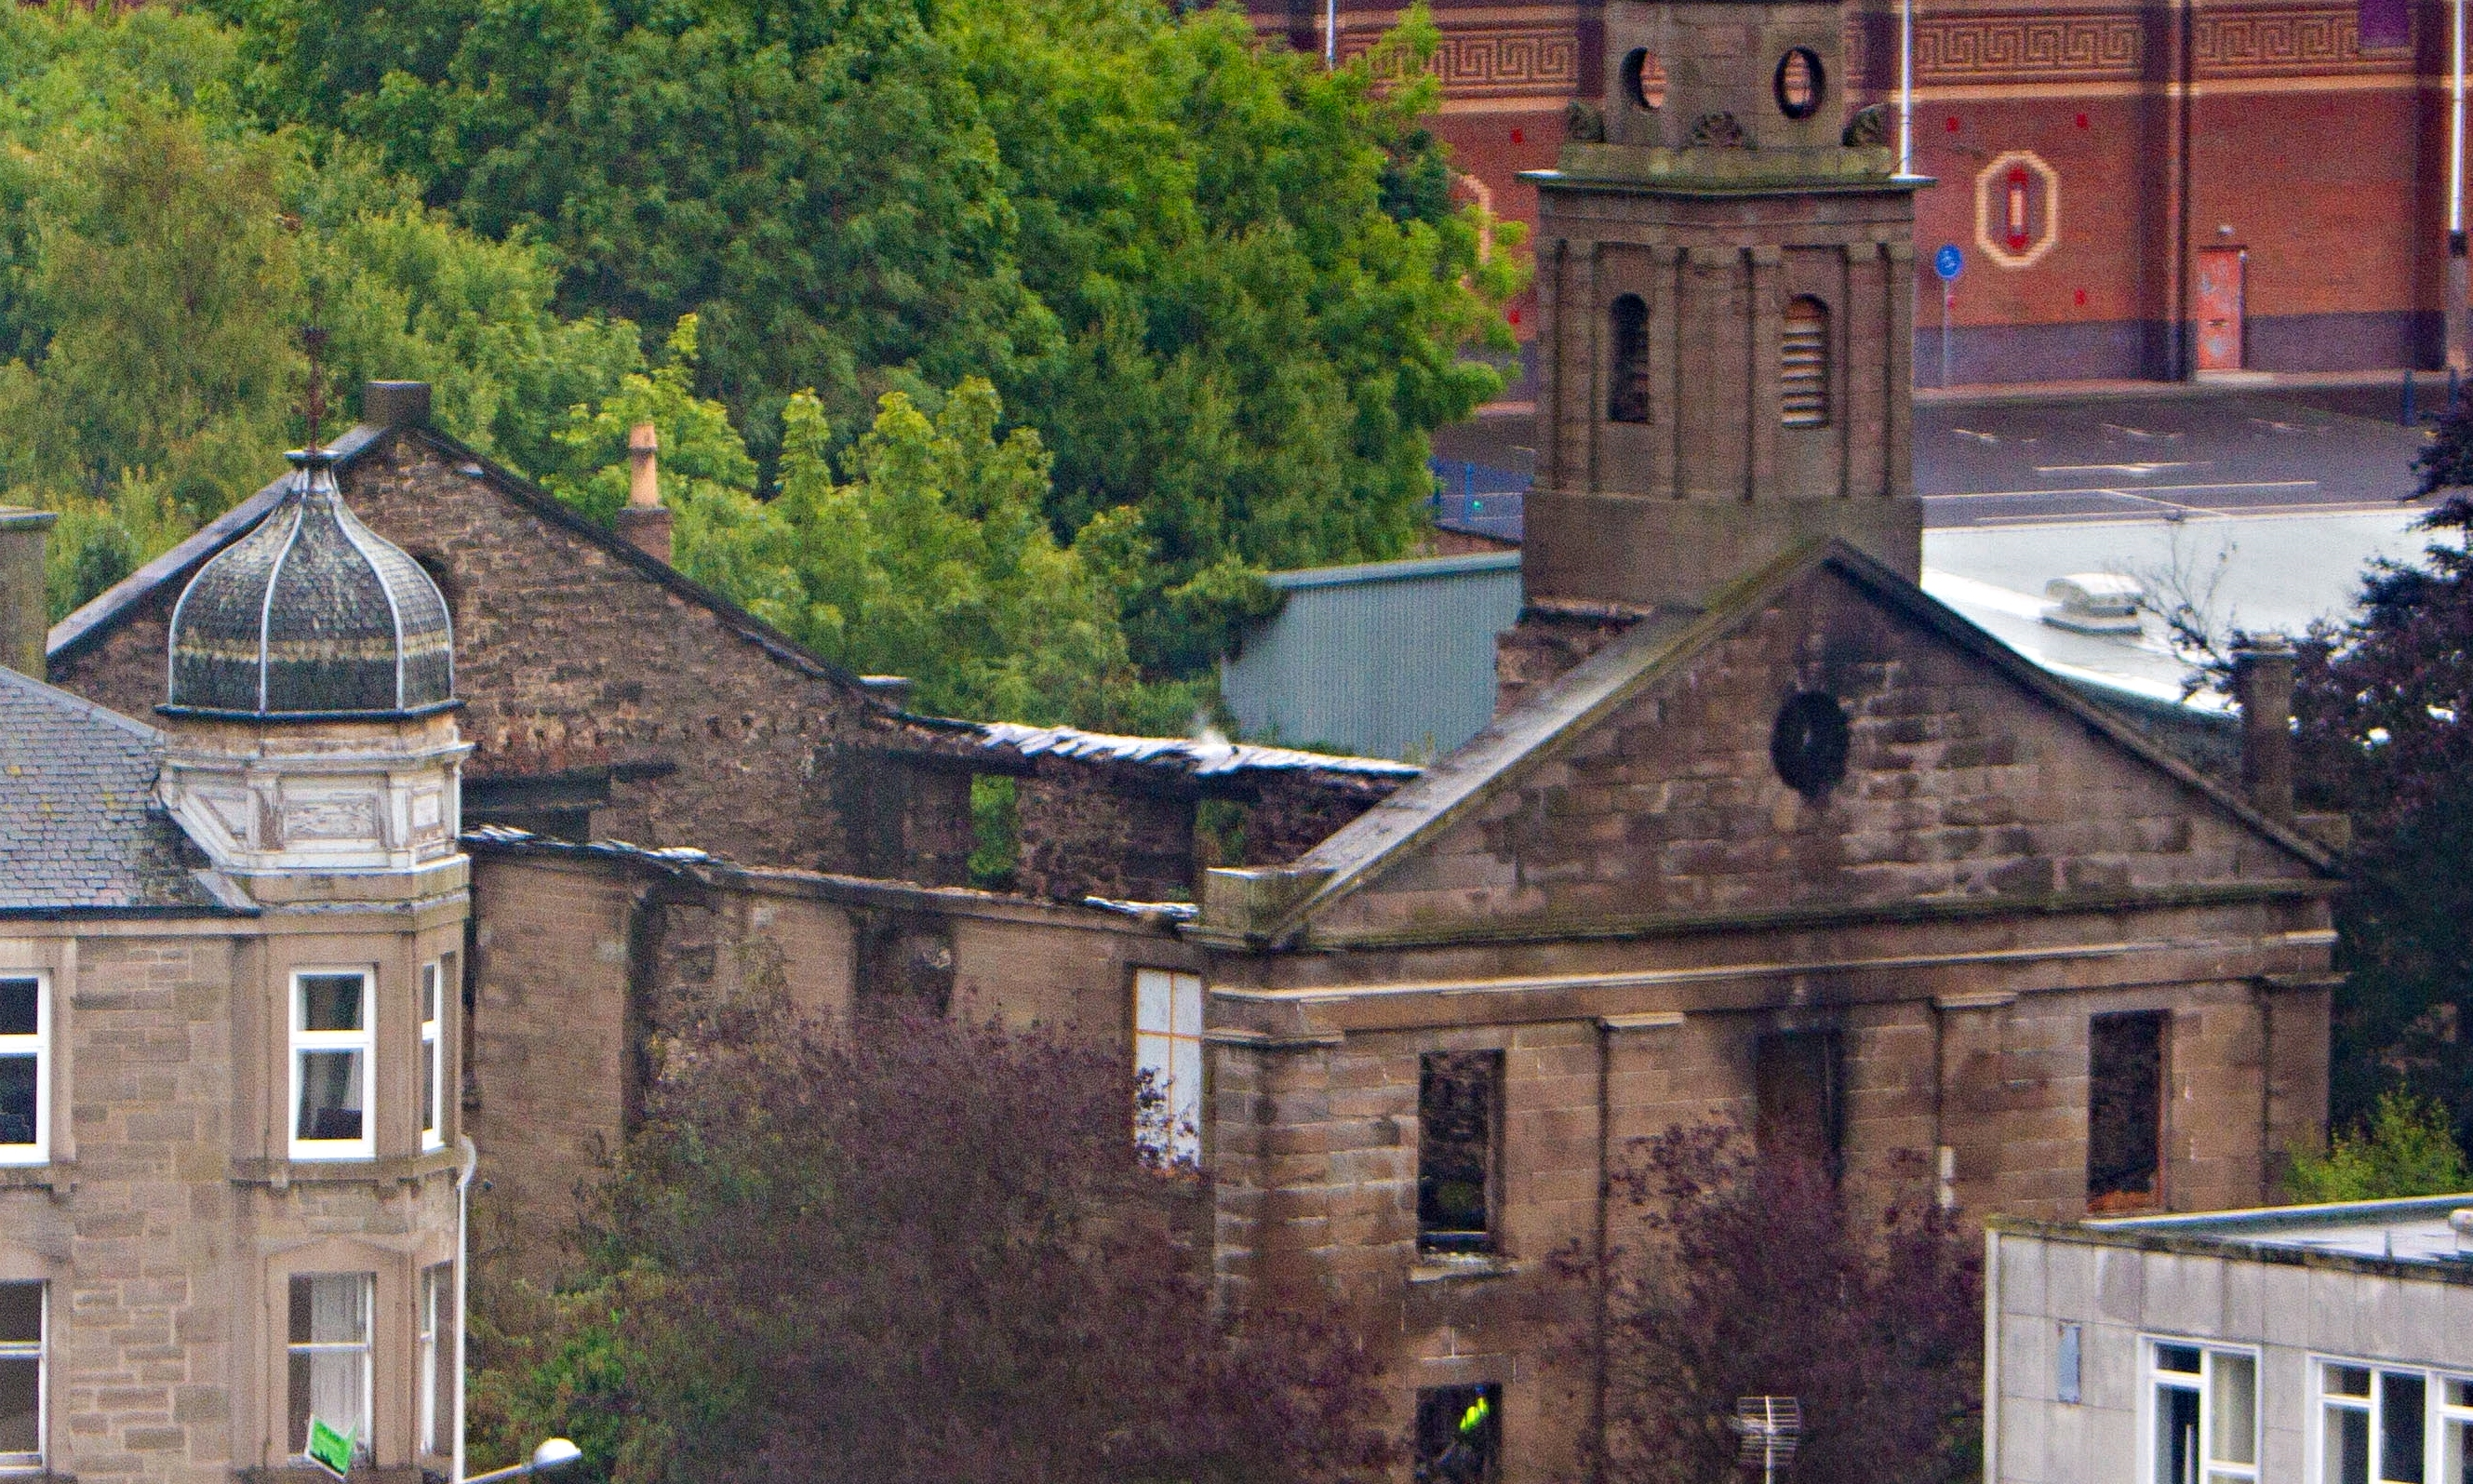 The burnt-out shell of the former Lochee Old Church.